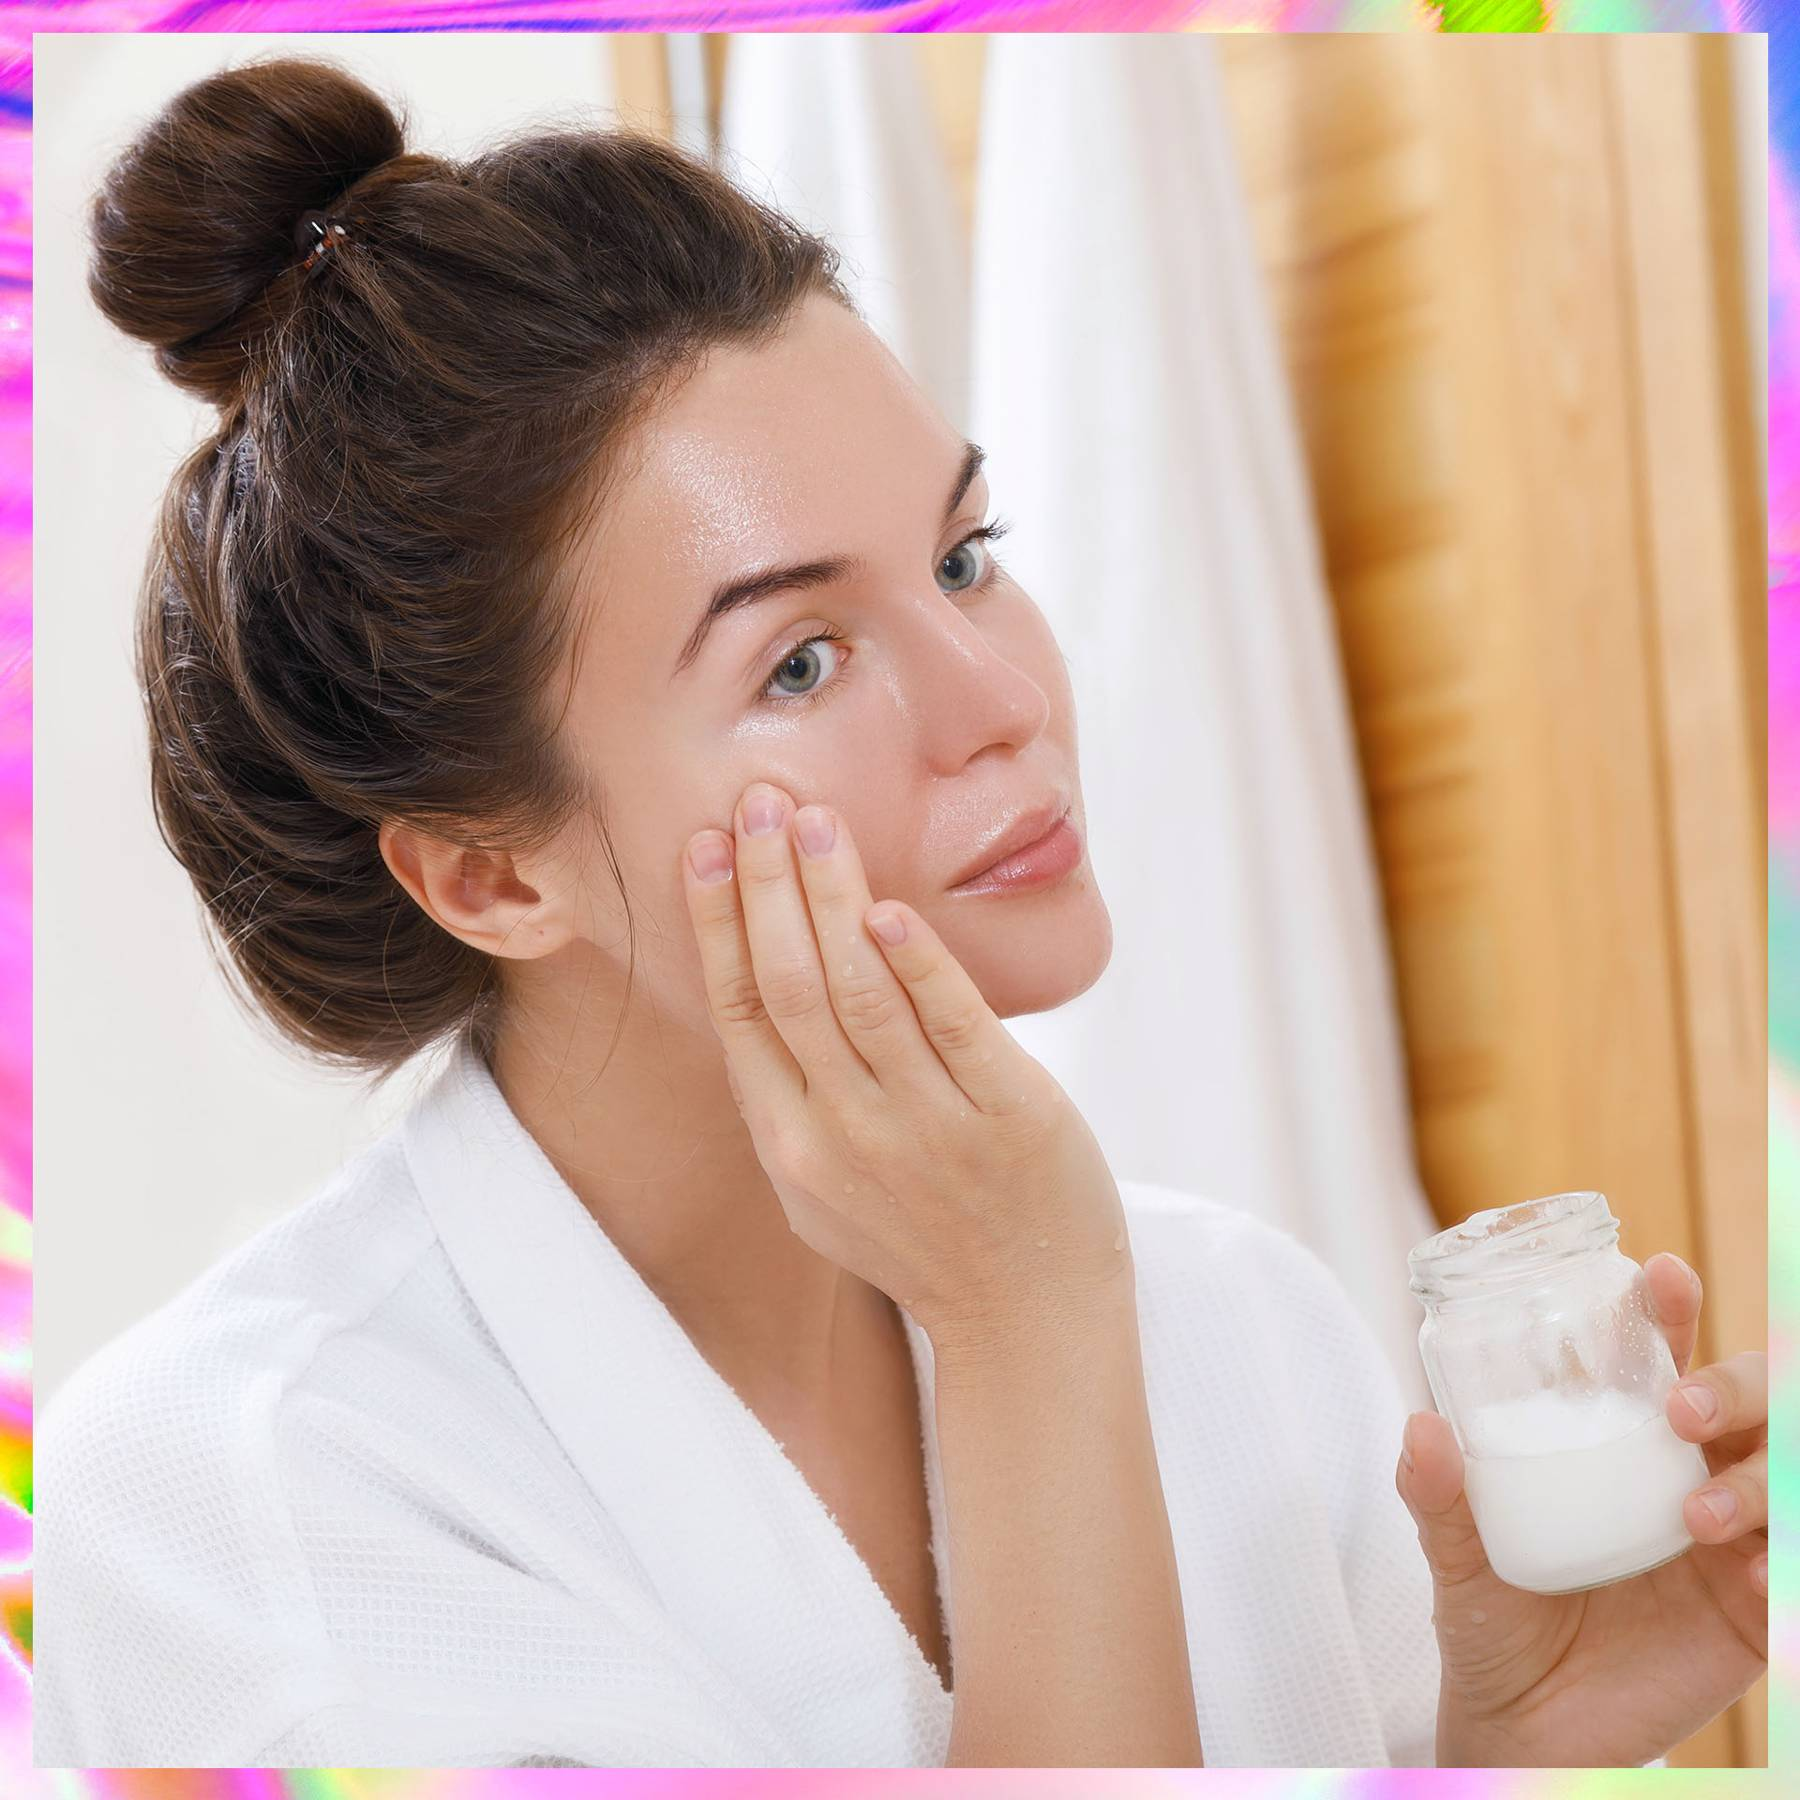 How probiotic skincare will help prevent 'inflammageing' and give you your best complexion yet